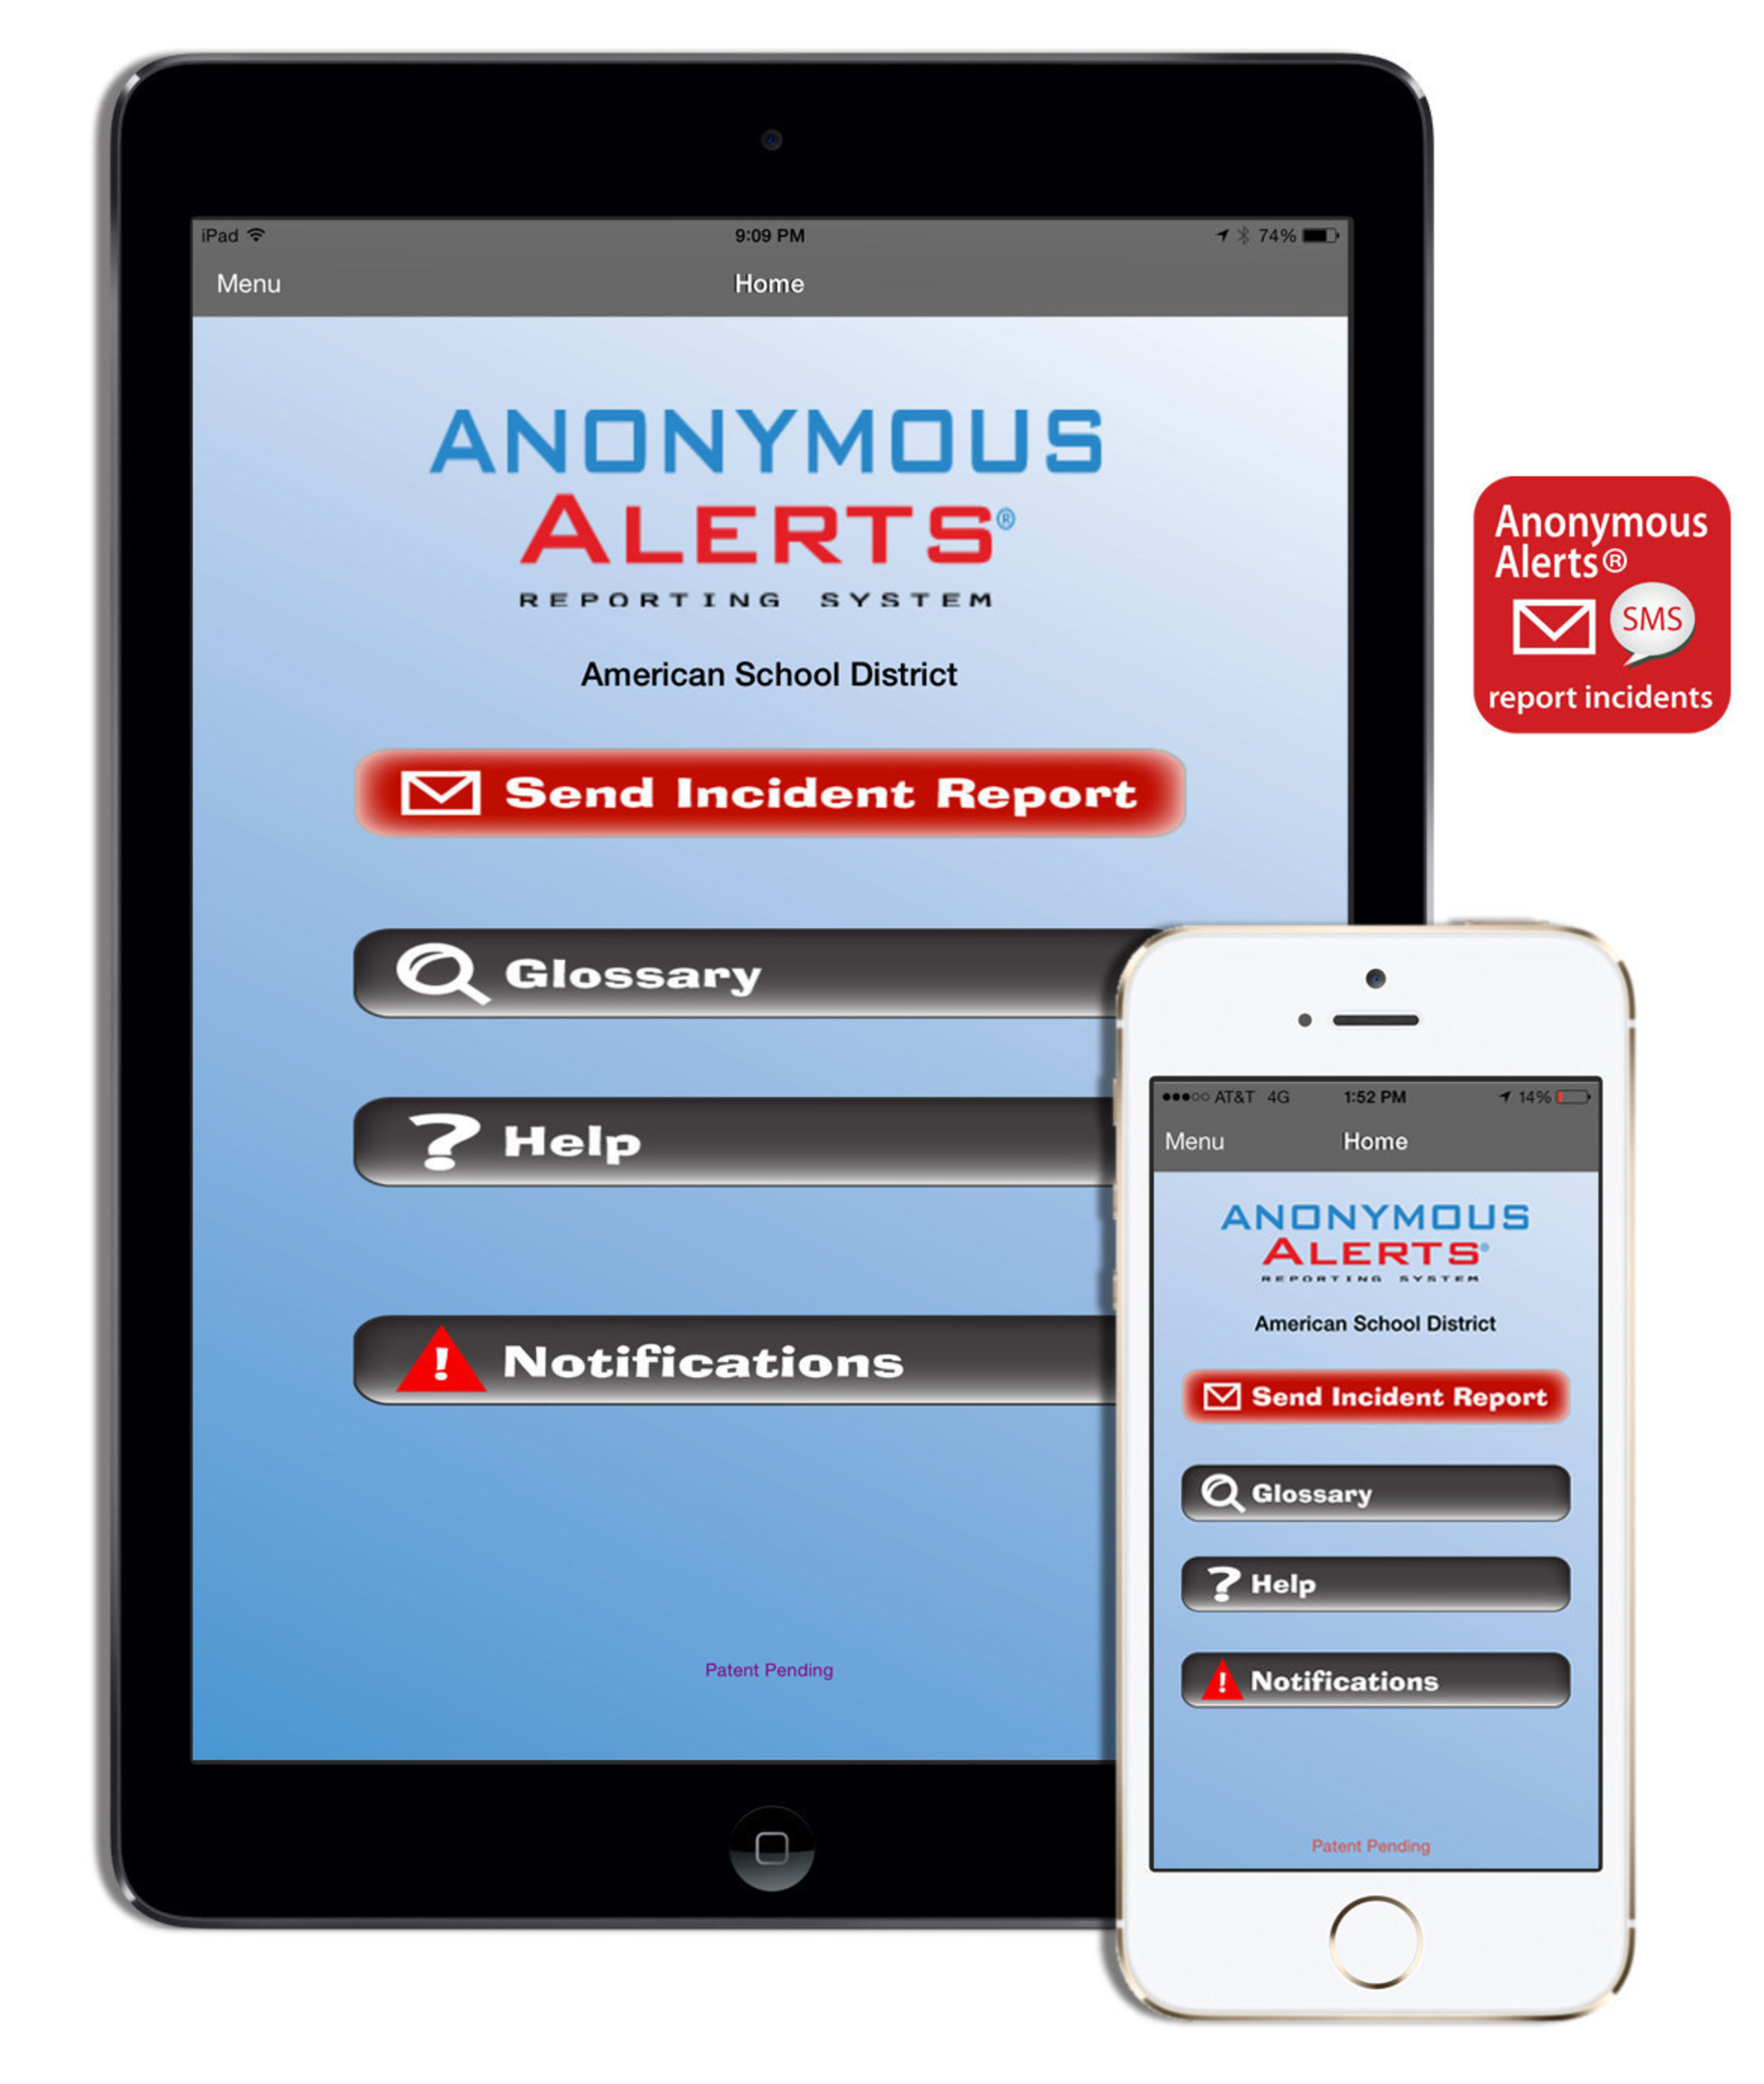 Anonymous Alerts' Anti-Bullying App is Now Patented